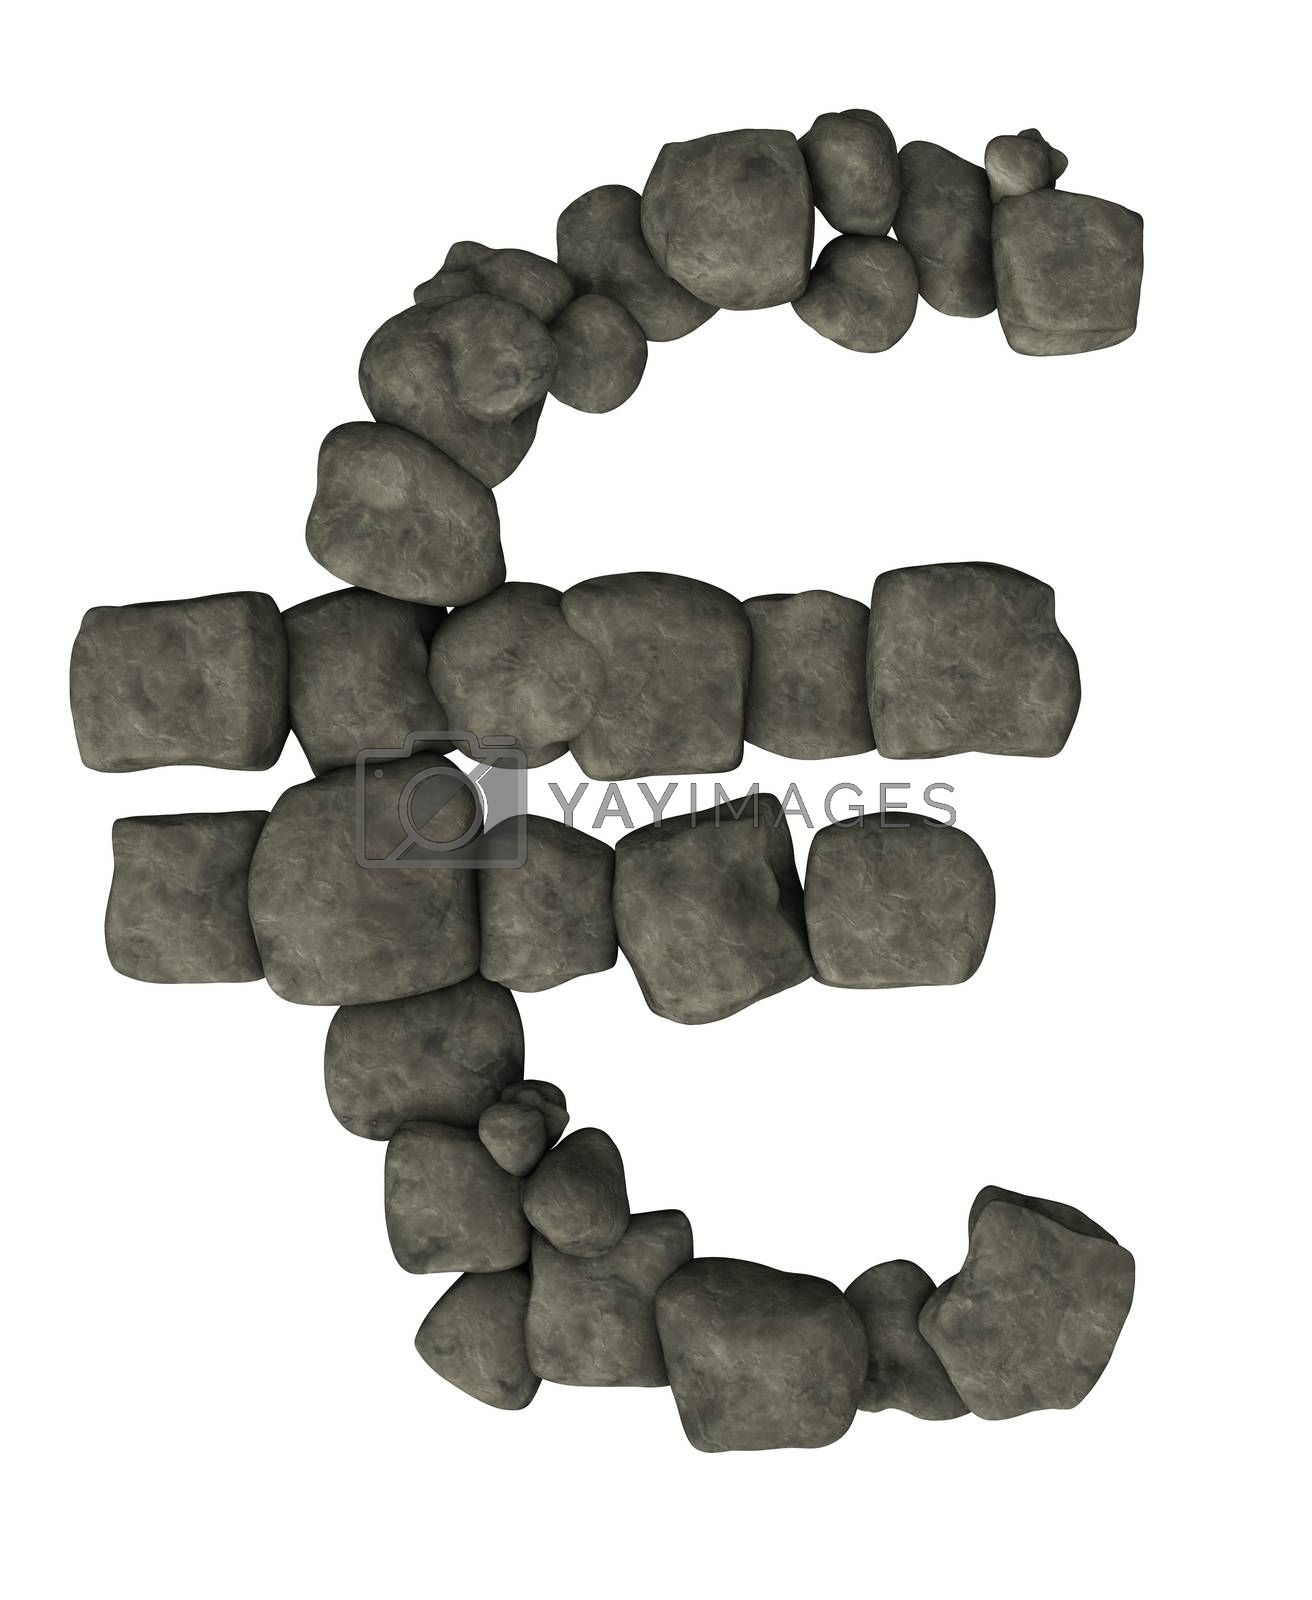 euro symbol made from pebbles on white background - 3d illustration